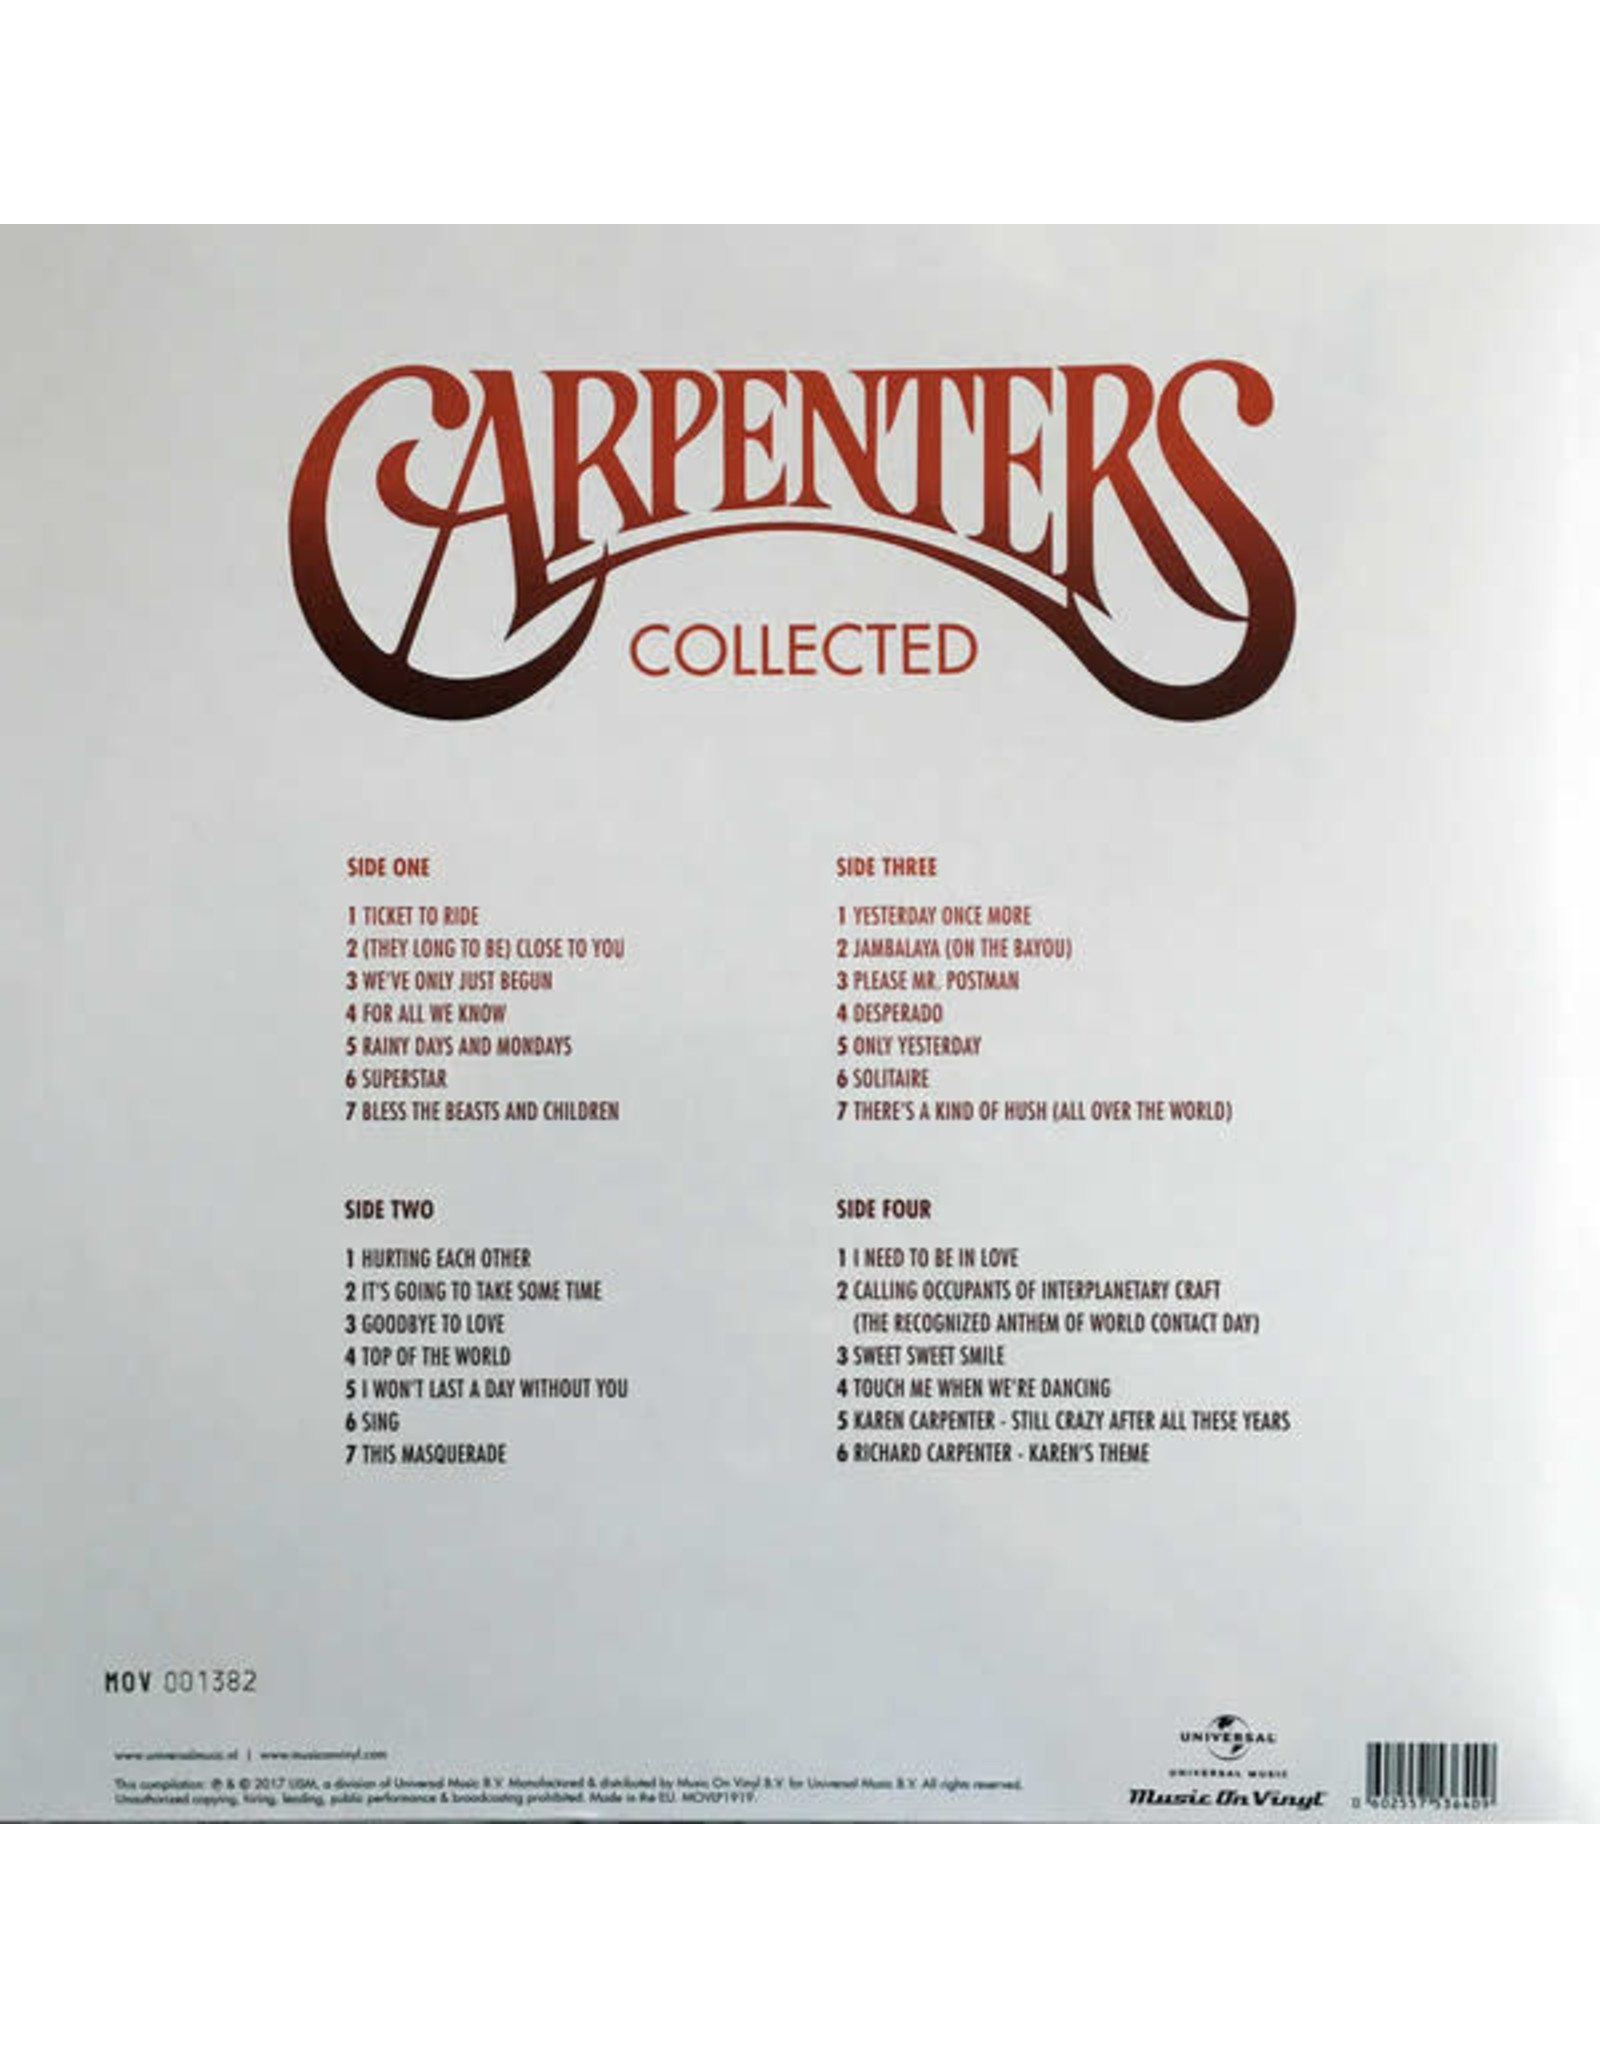 Carpenters - Collected (Red Vinyl) [Music On Vinyl]